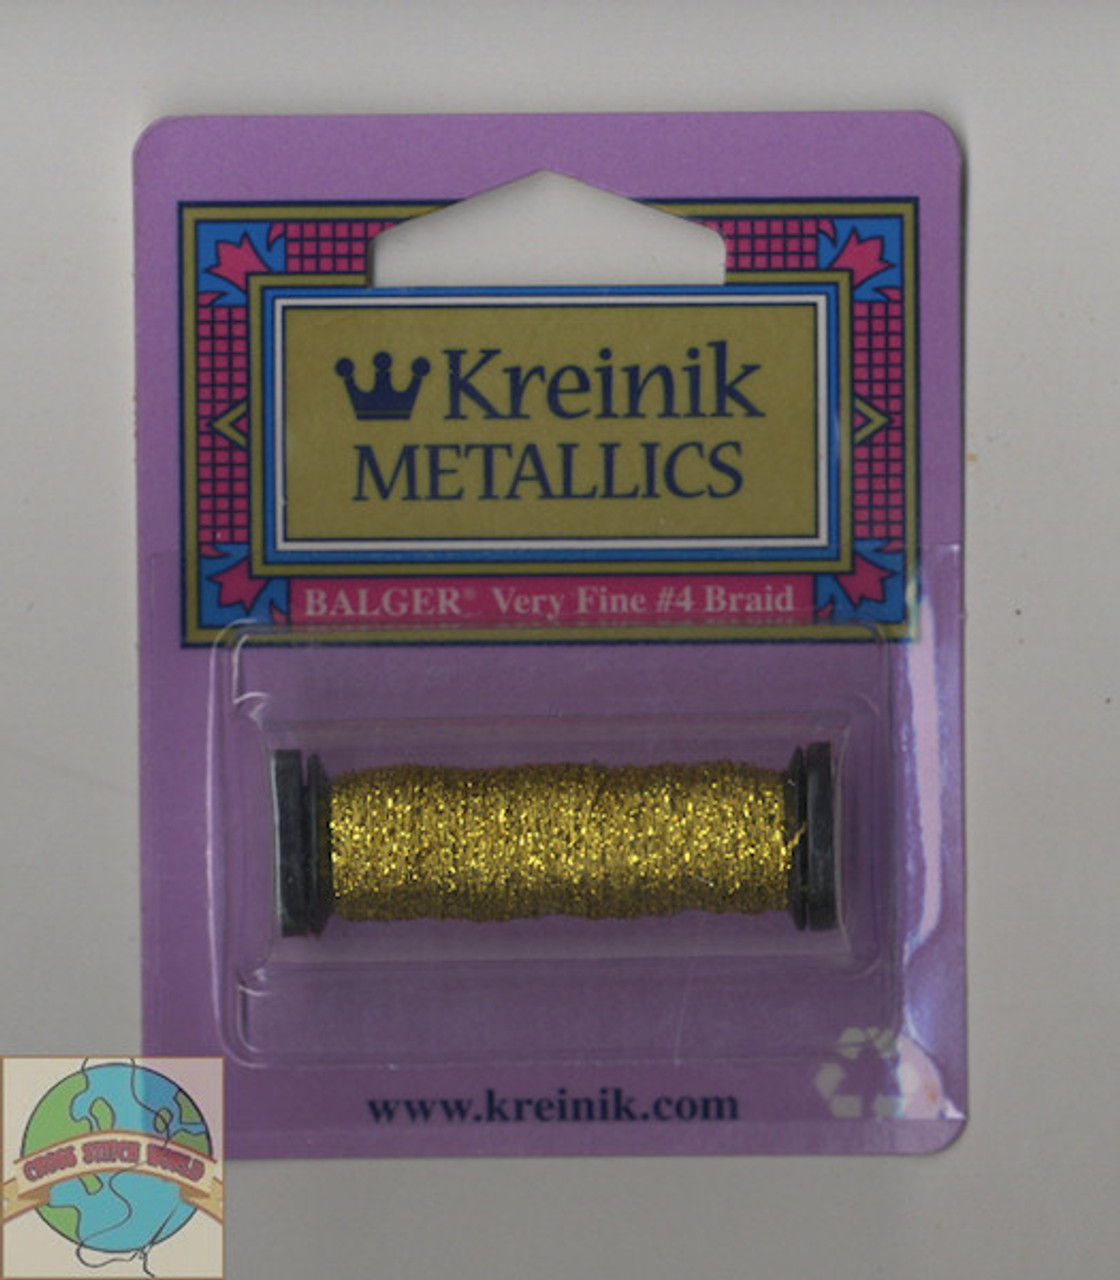 Kreinik Metallics - Very Fine #4 Citron #028